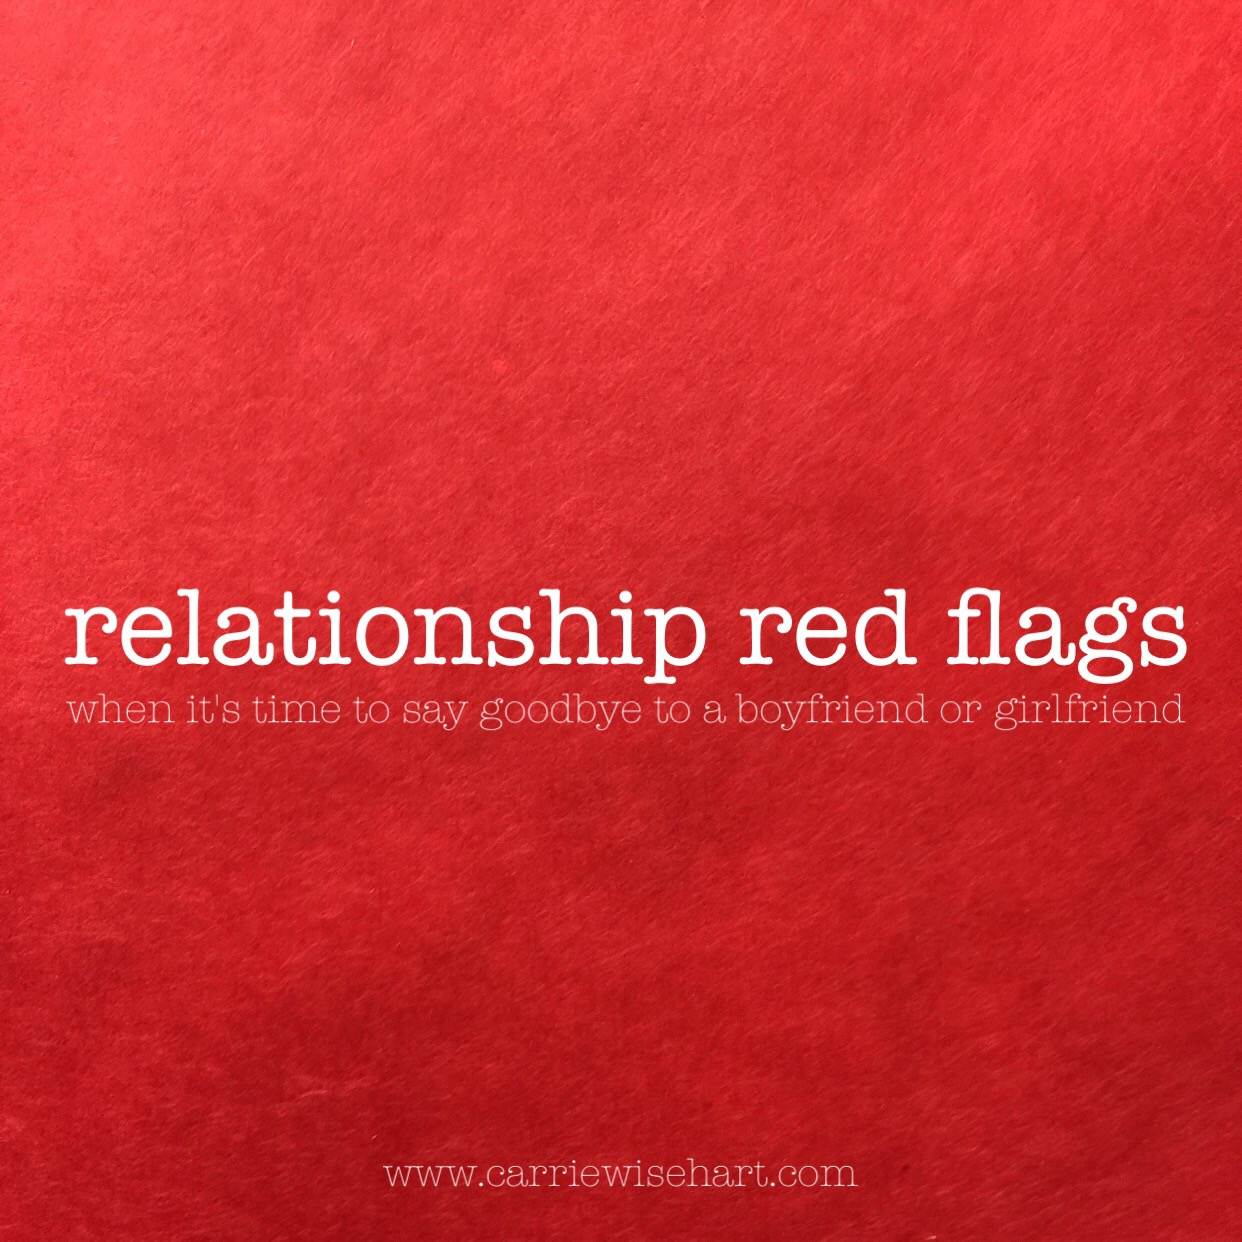 relationship red flags: when to say goodbye to that